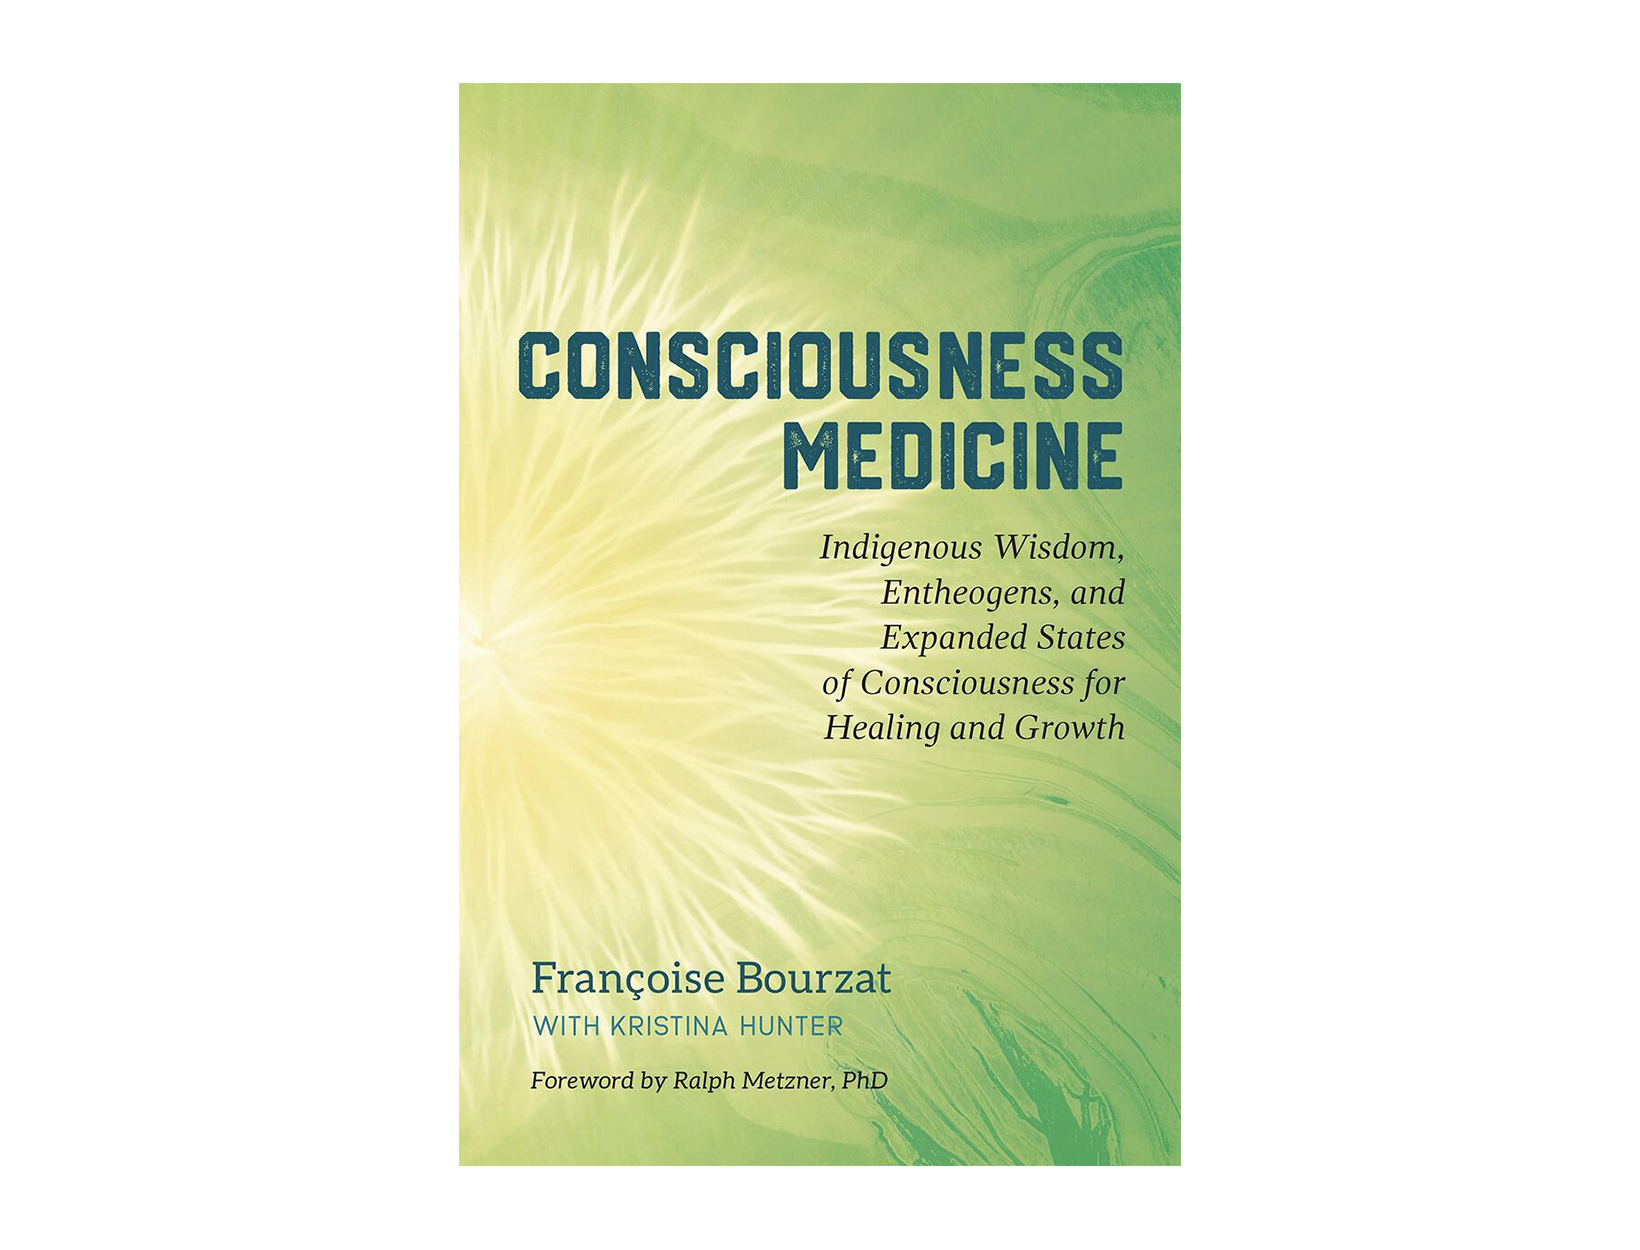 <em>Consciousness Medicine</em> by Françoise Bourzat with Kristina Hunter